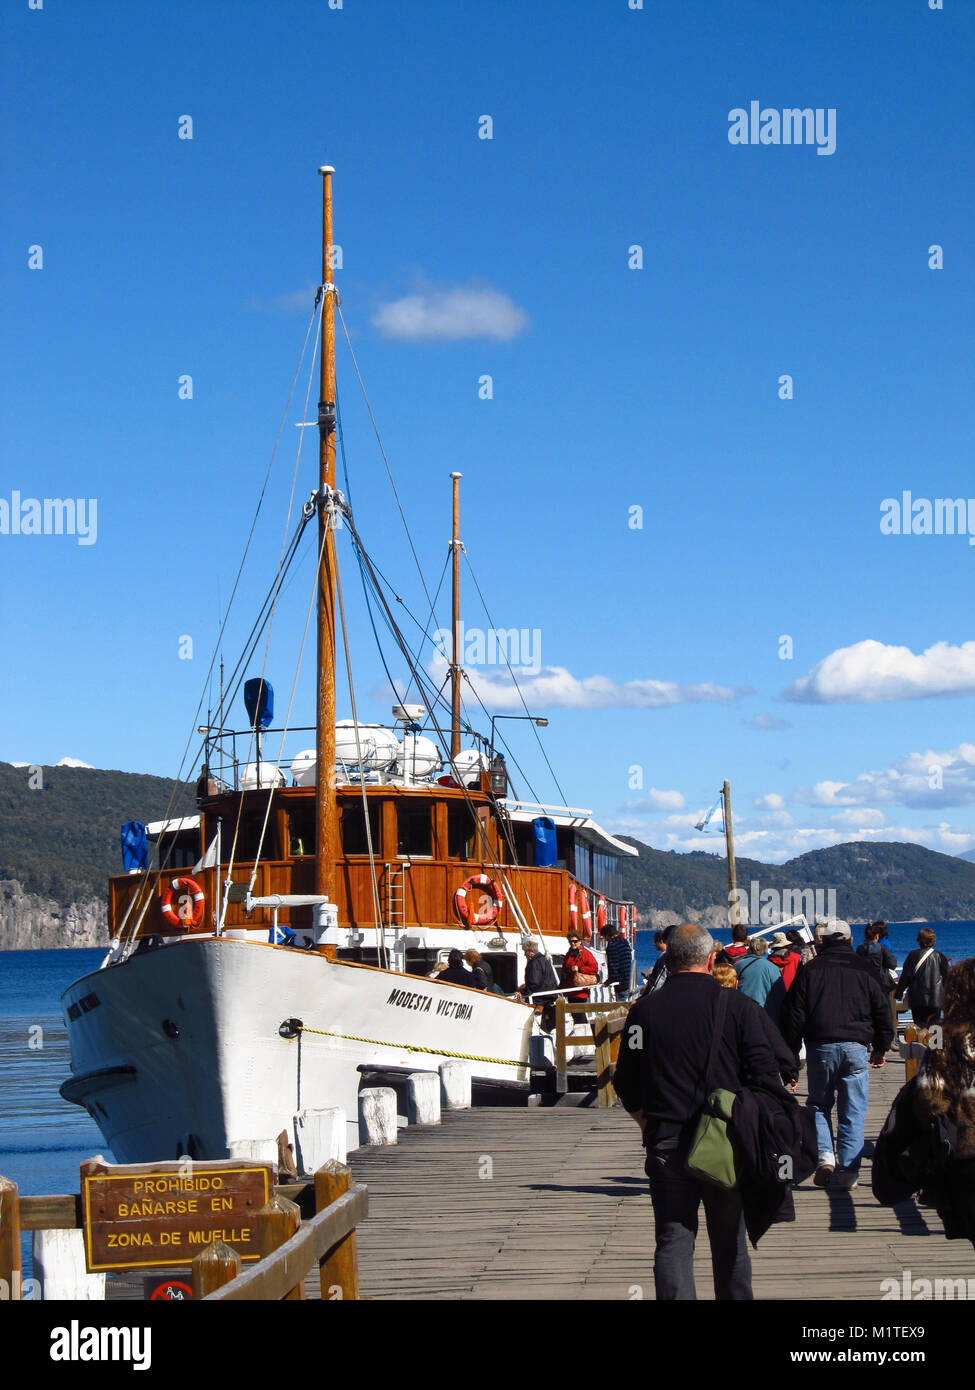 LOS ARRAYANES NATIONAL PARK, NEUQUEN, ARGENTINA - NOVEMBER 24, 2012: The Modesta Victoria ready to leave Los Arrayanes - Stock Image